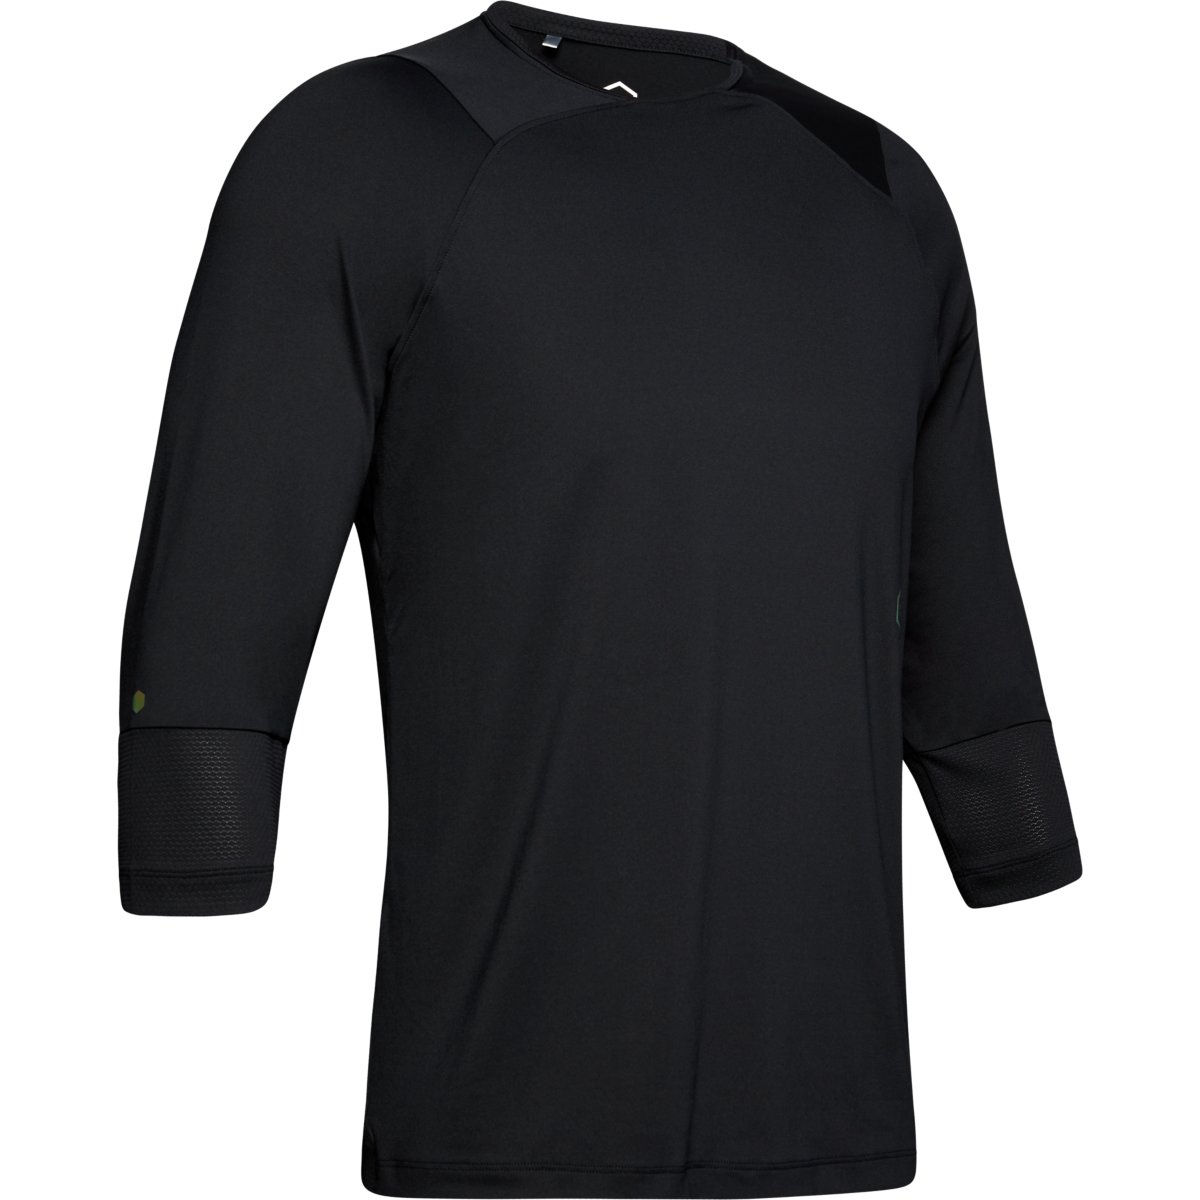 Under Armour Under Armour Rush Compression Long Sleeve Top   Compression Tops